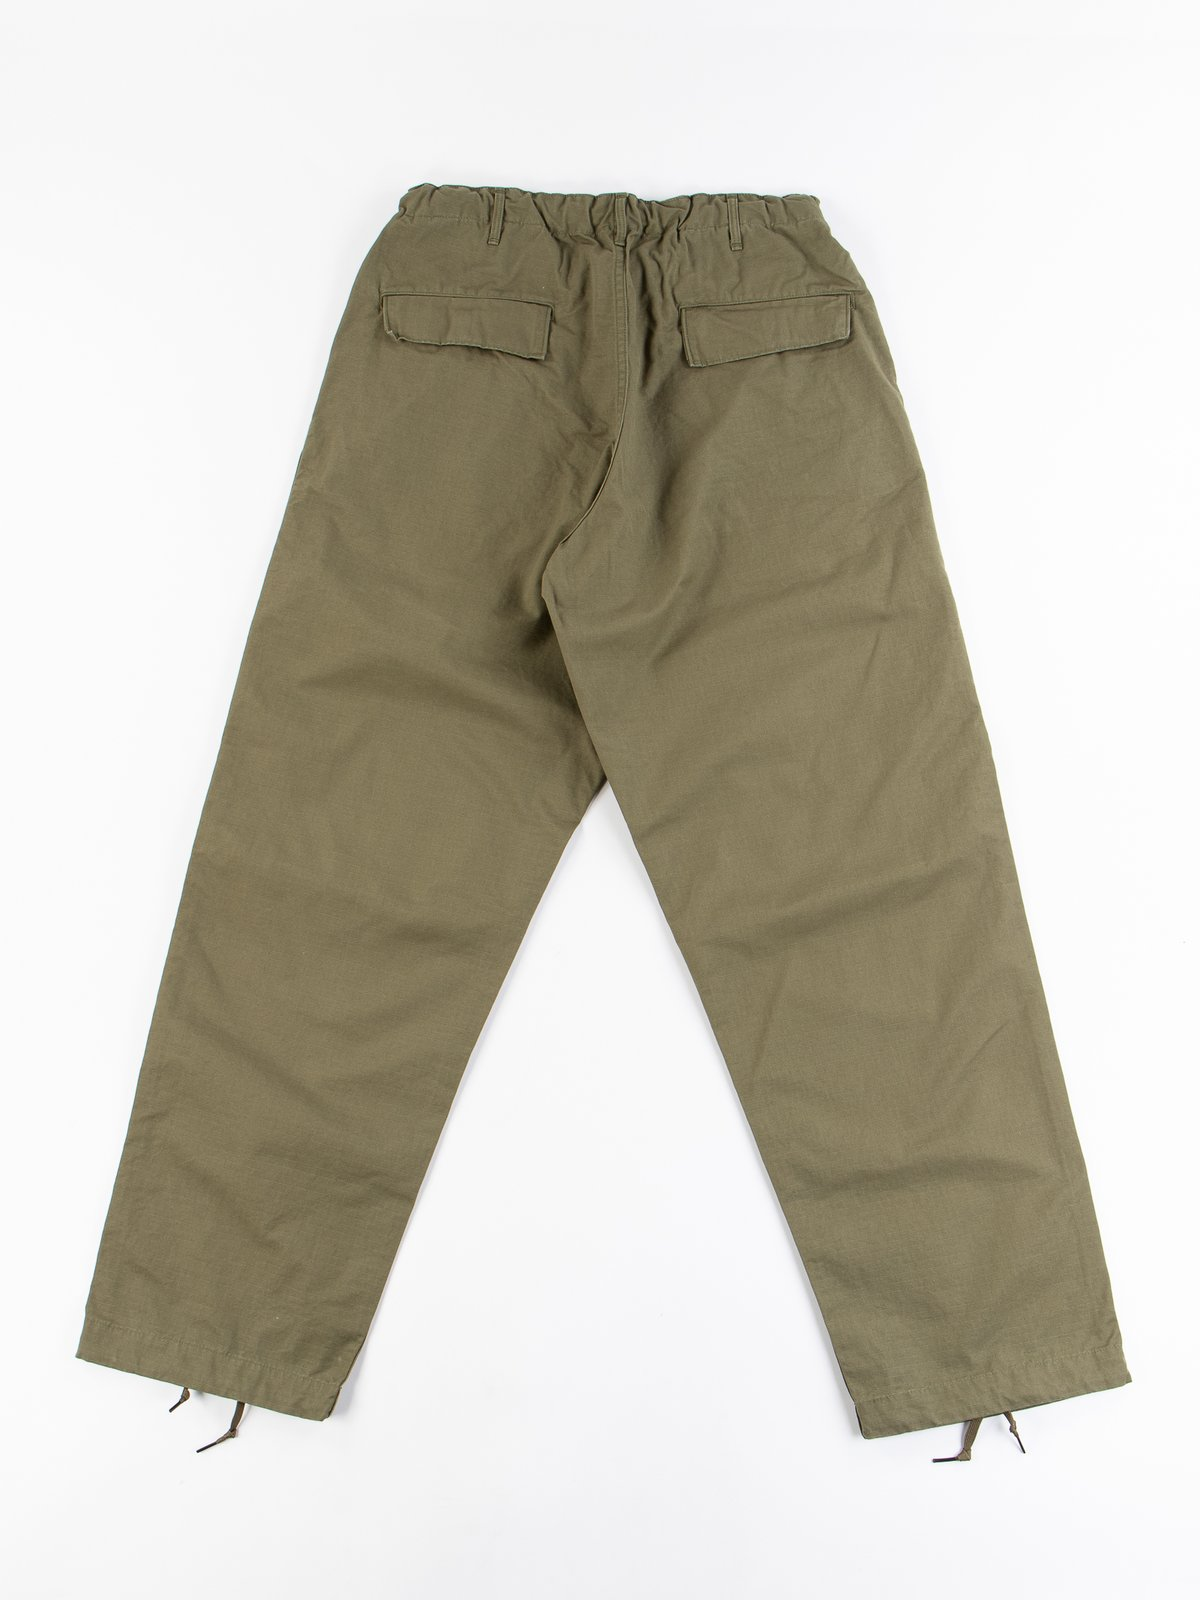 Army Green Ripstop TBB Service Pant - Image 6